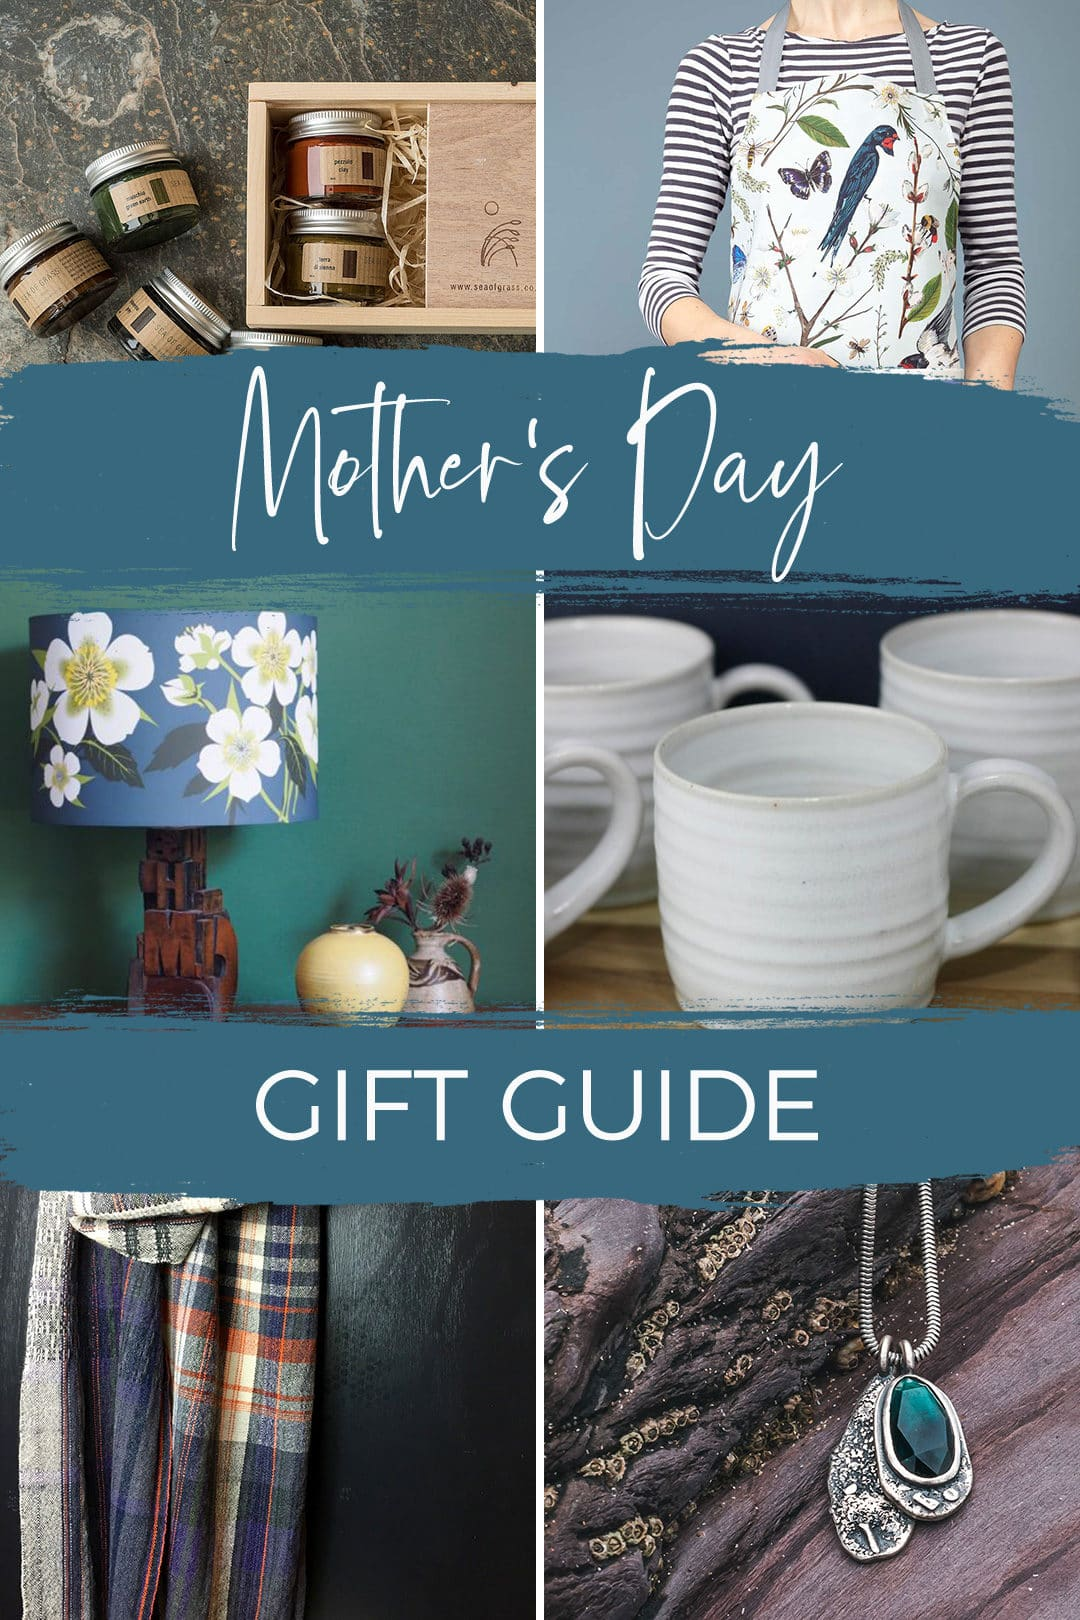 Mother's Day 2019 Cornish gift guide